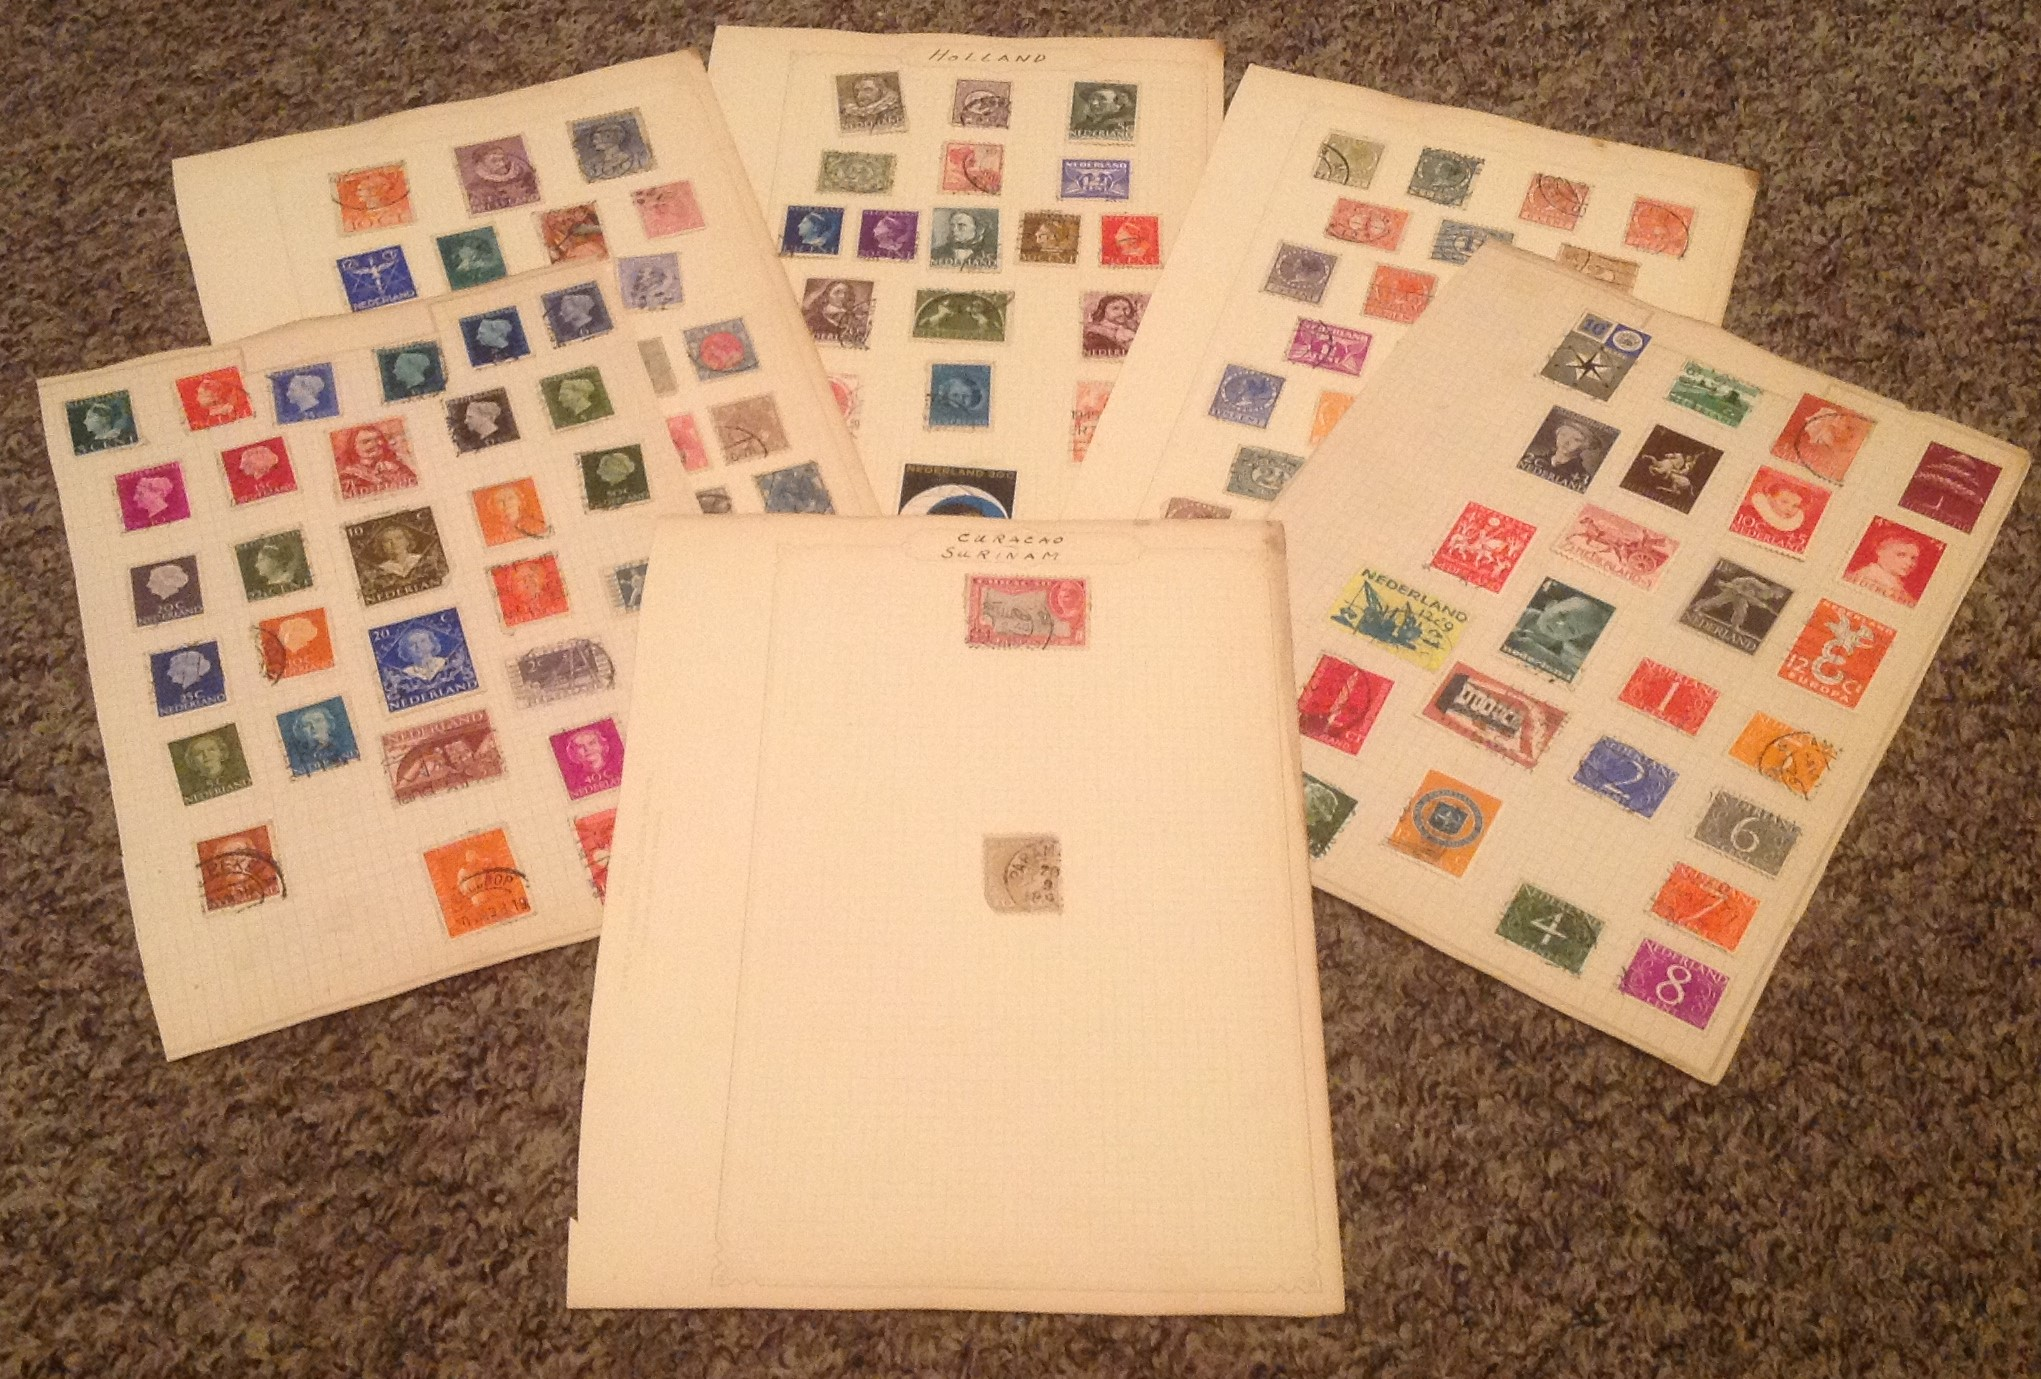 Holland Stamp collection 6 loose album pages. Good condition. We combine postage on multiple winning